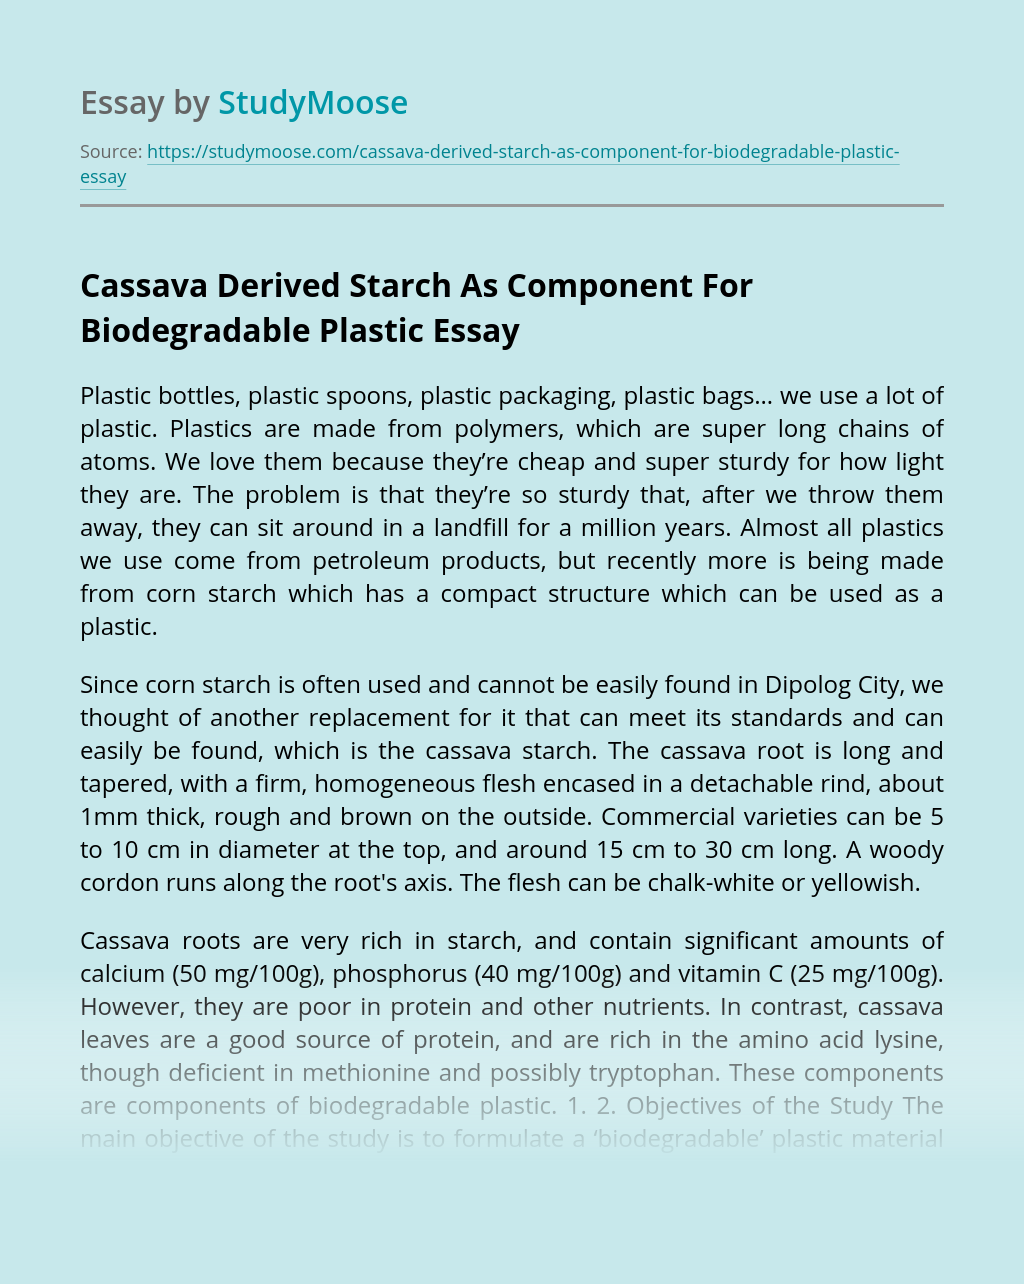 Cassava Derived Starch As Component For Biodegradable Plastic